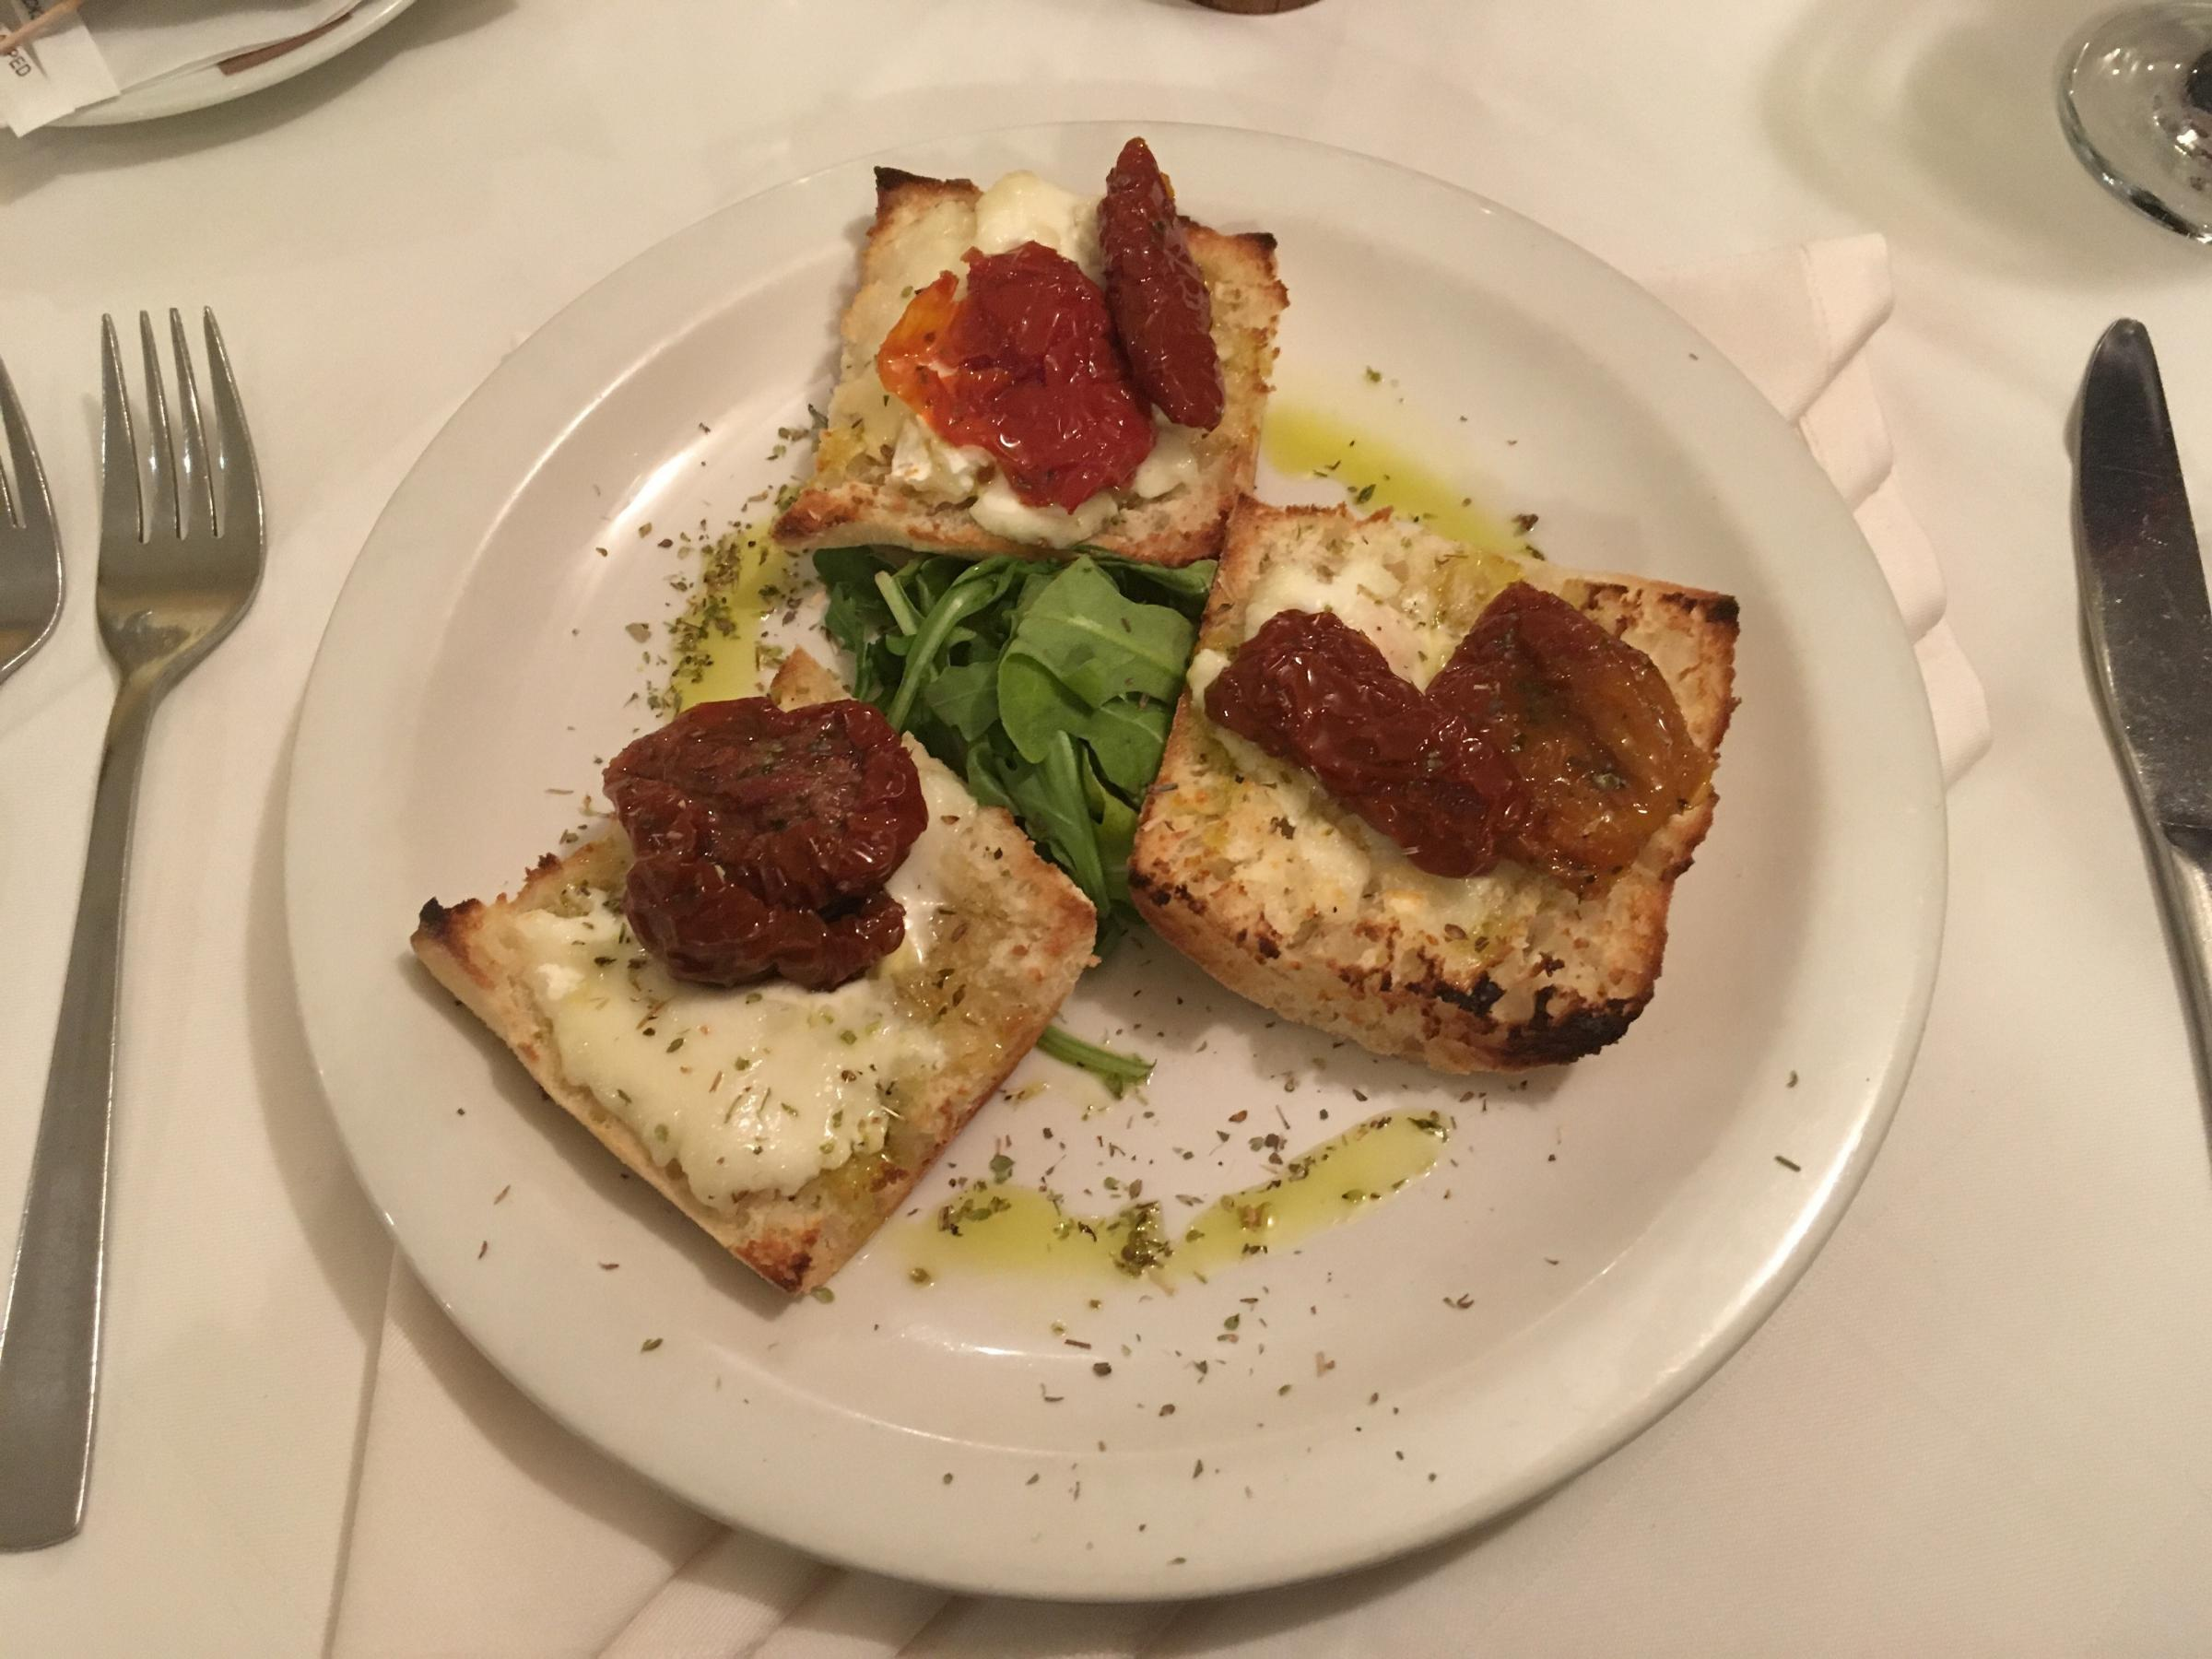 FOOD REVIEW: A taste of real Italy at Fratello's